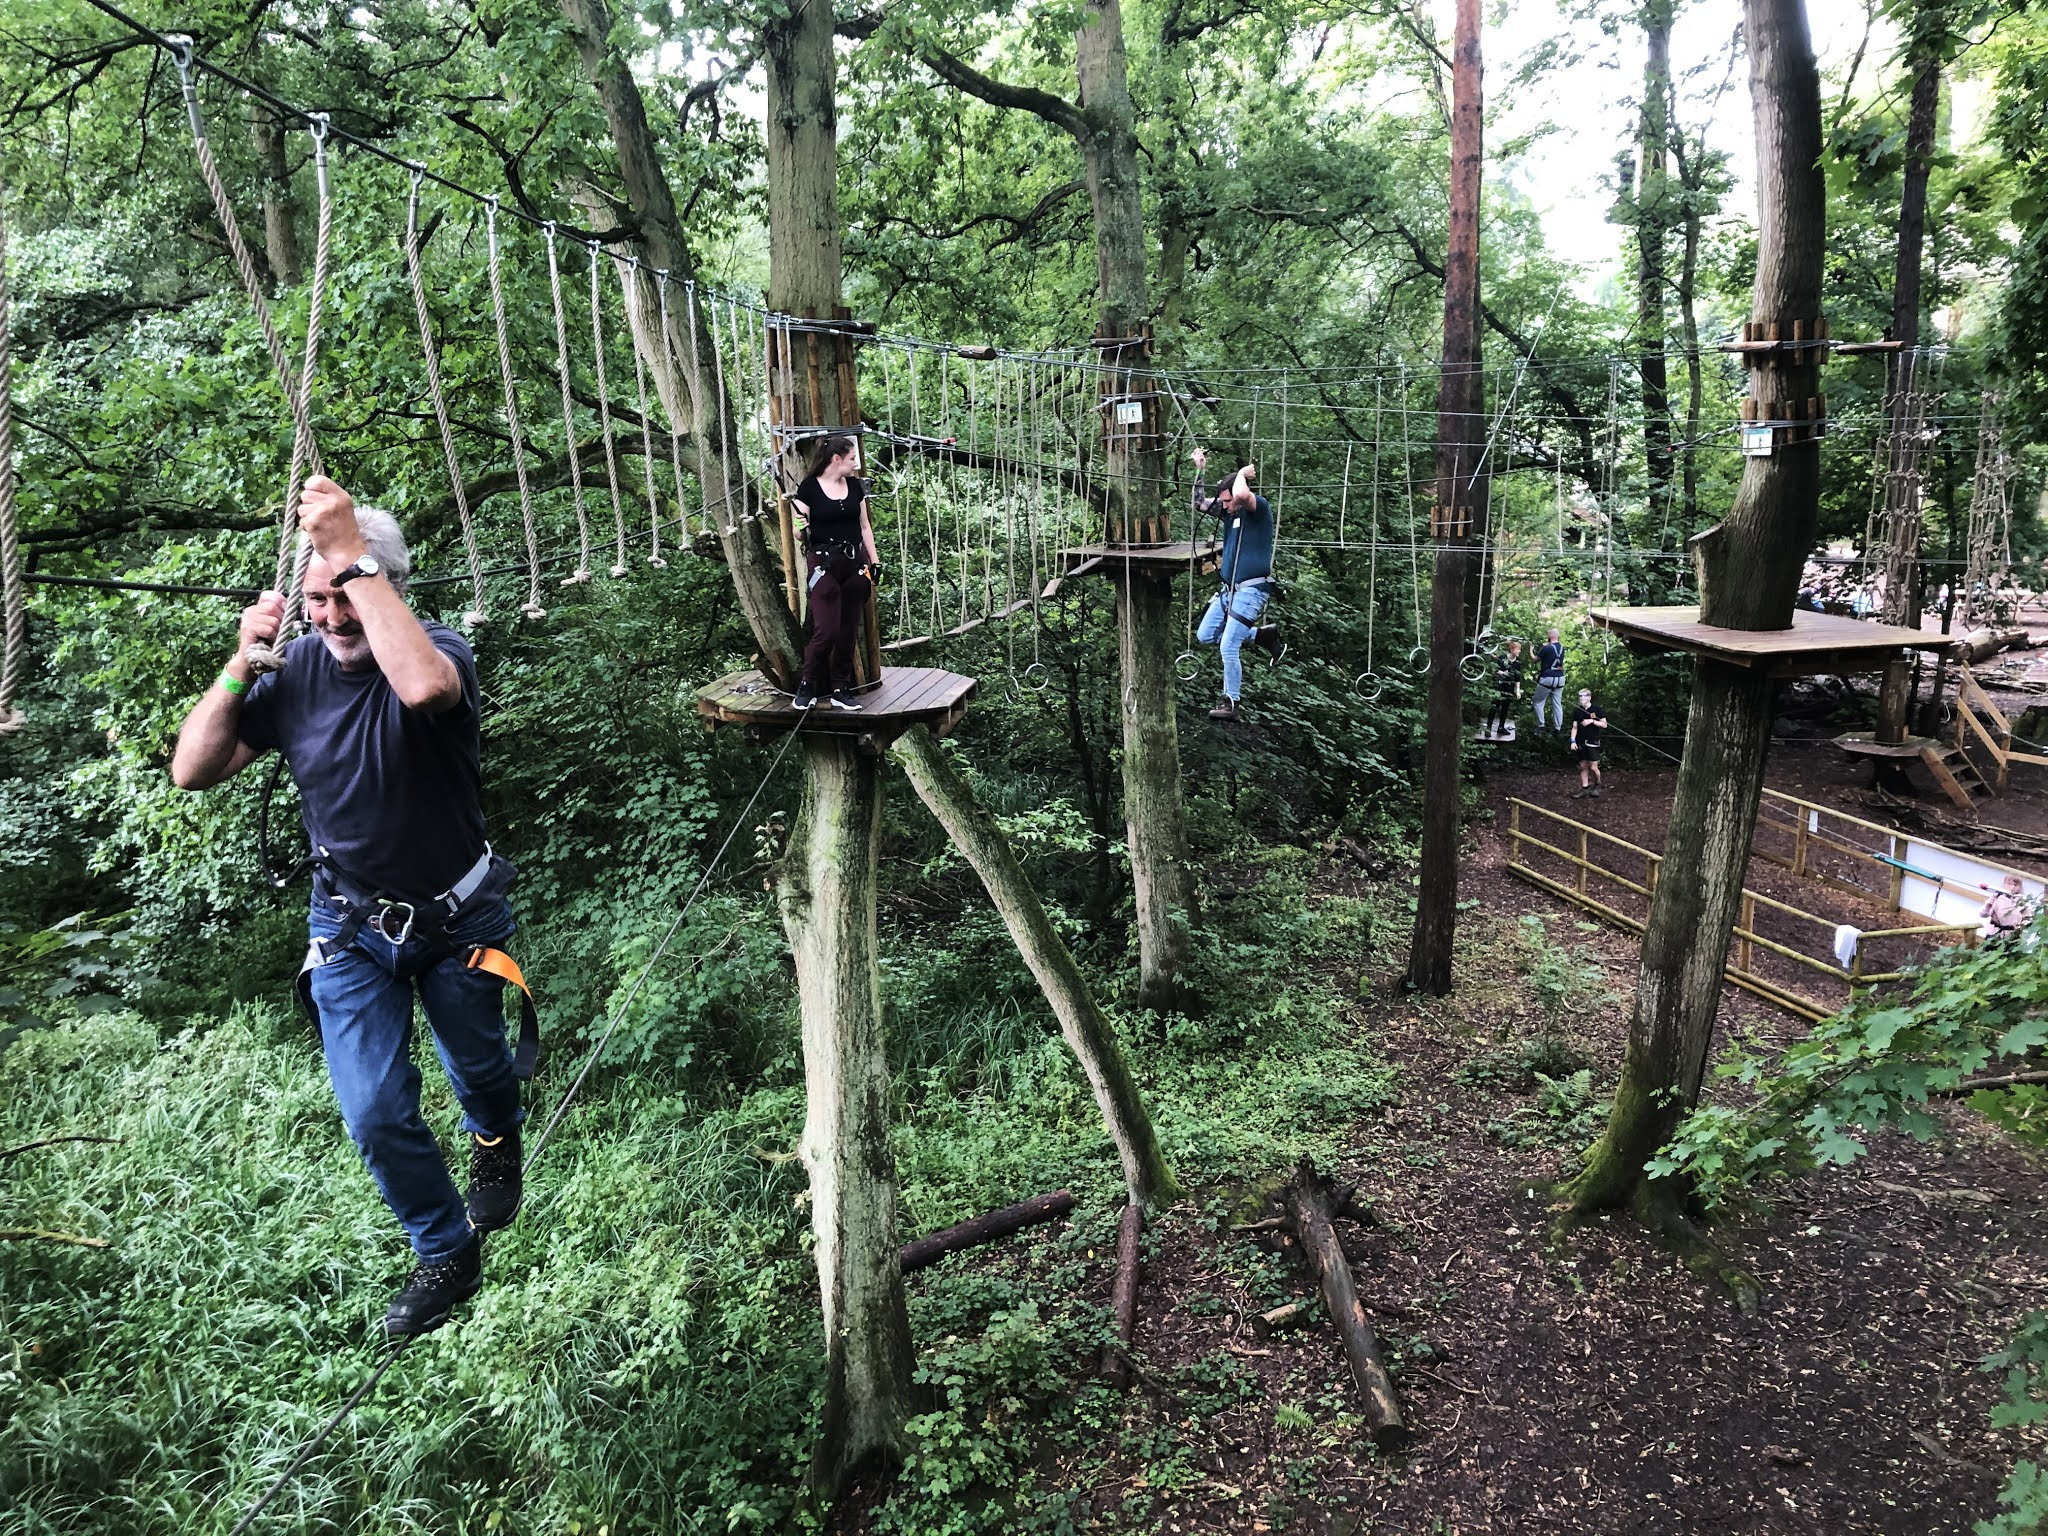 Several people working their way through the treetop obstacle course